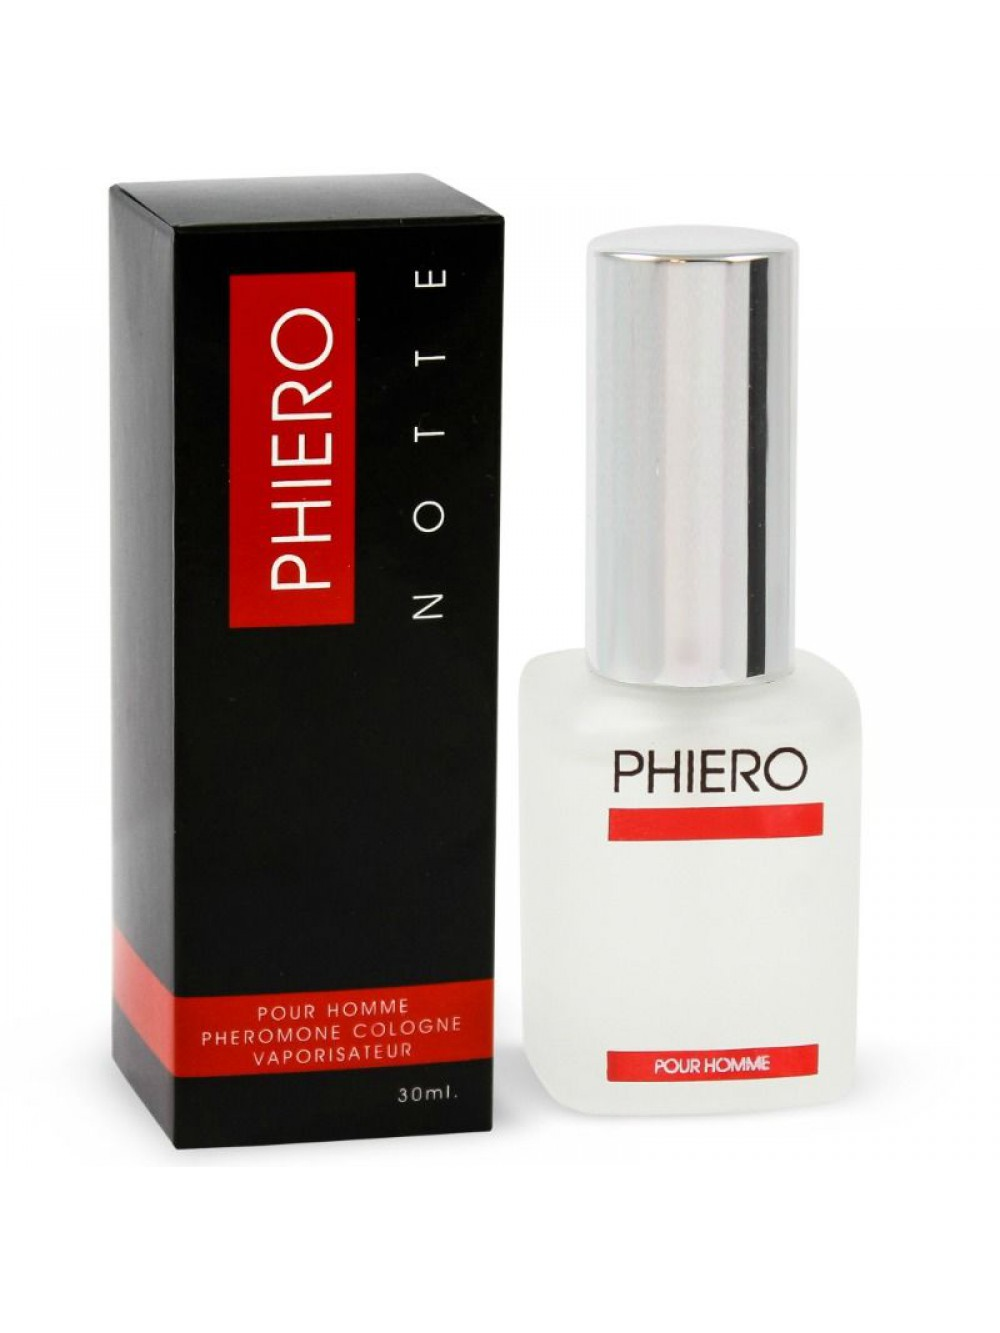 PHIERO NOTTE PERFUME WITH PHEROMONES FOR MEN